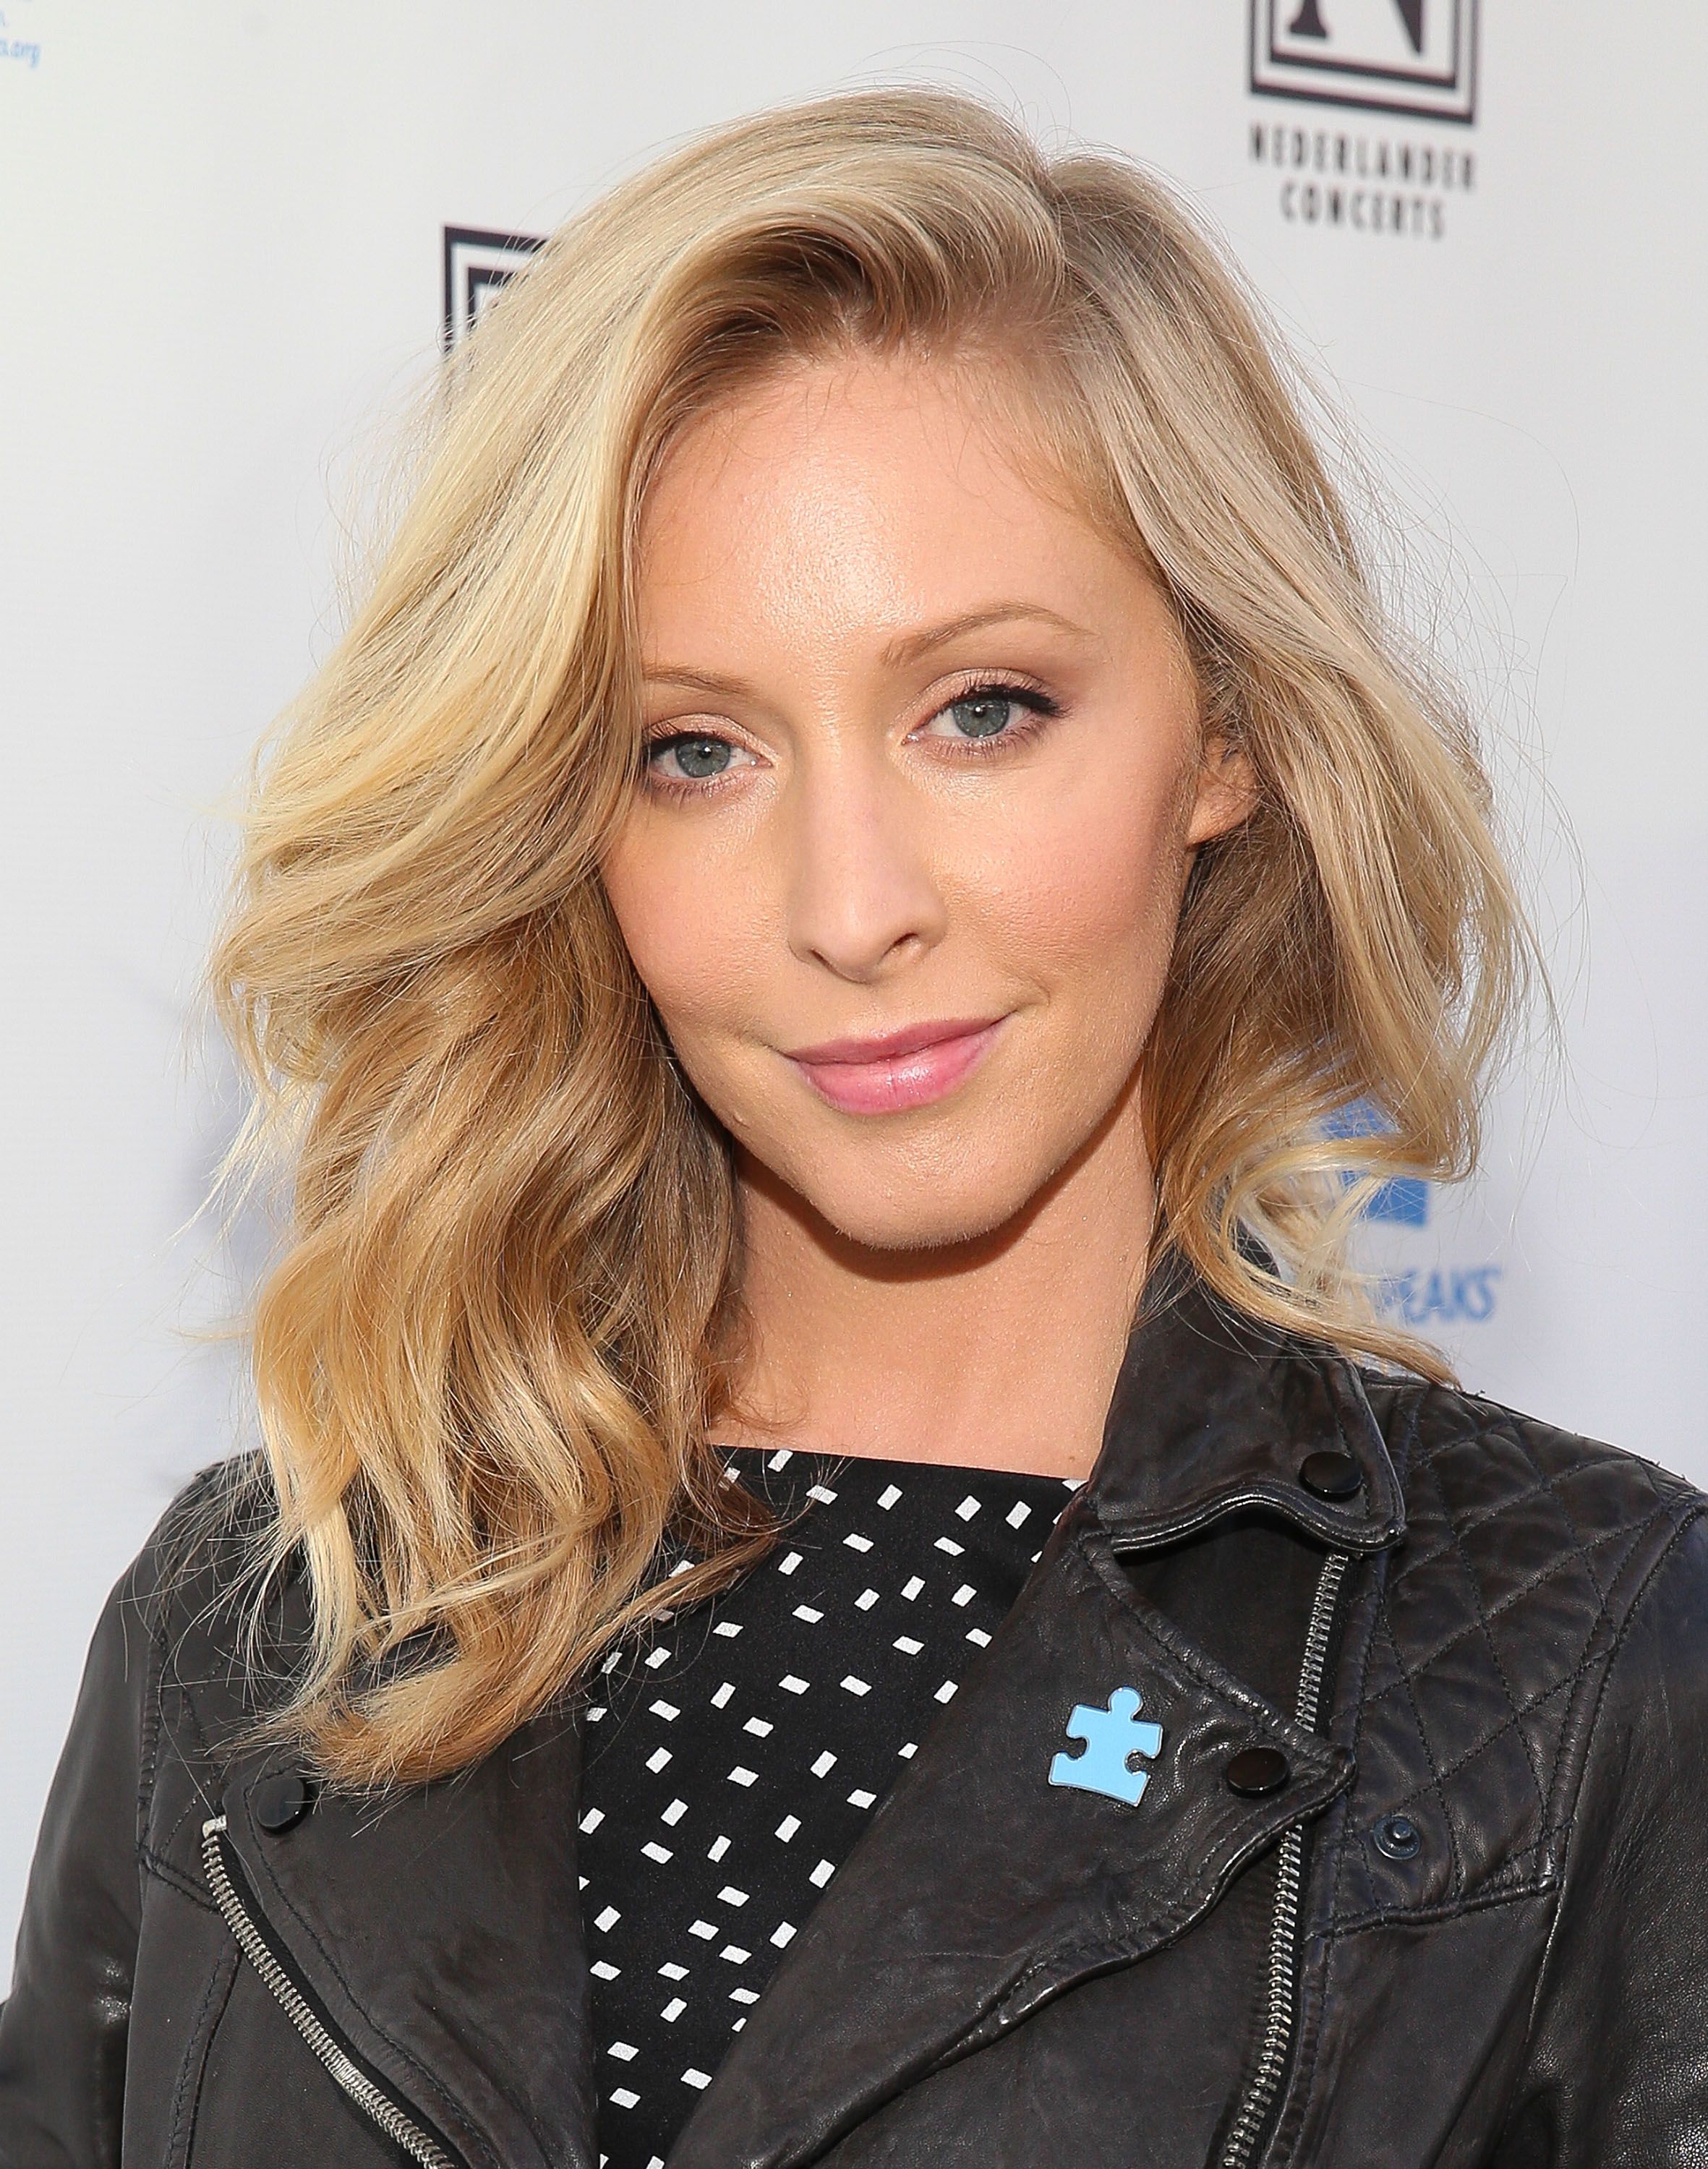 Leah Jenner Hair Tutorial